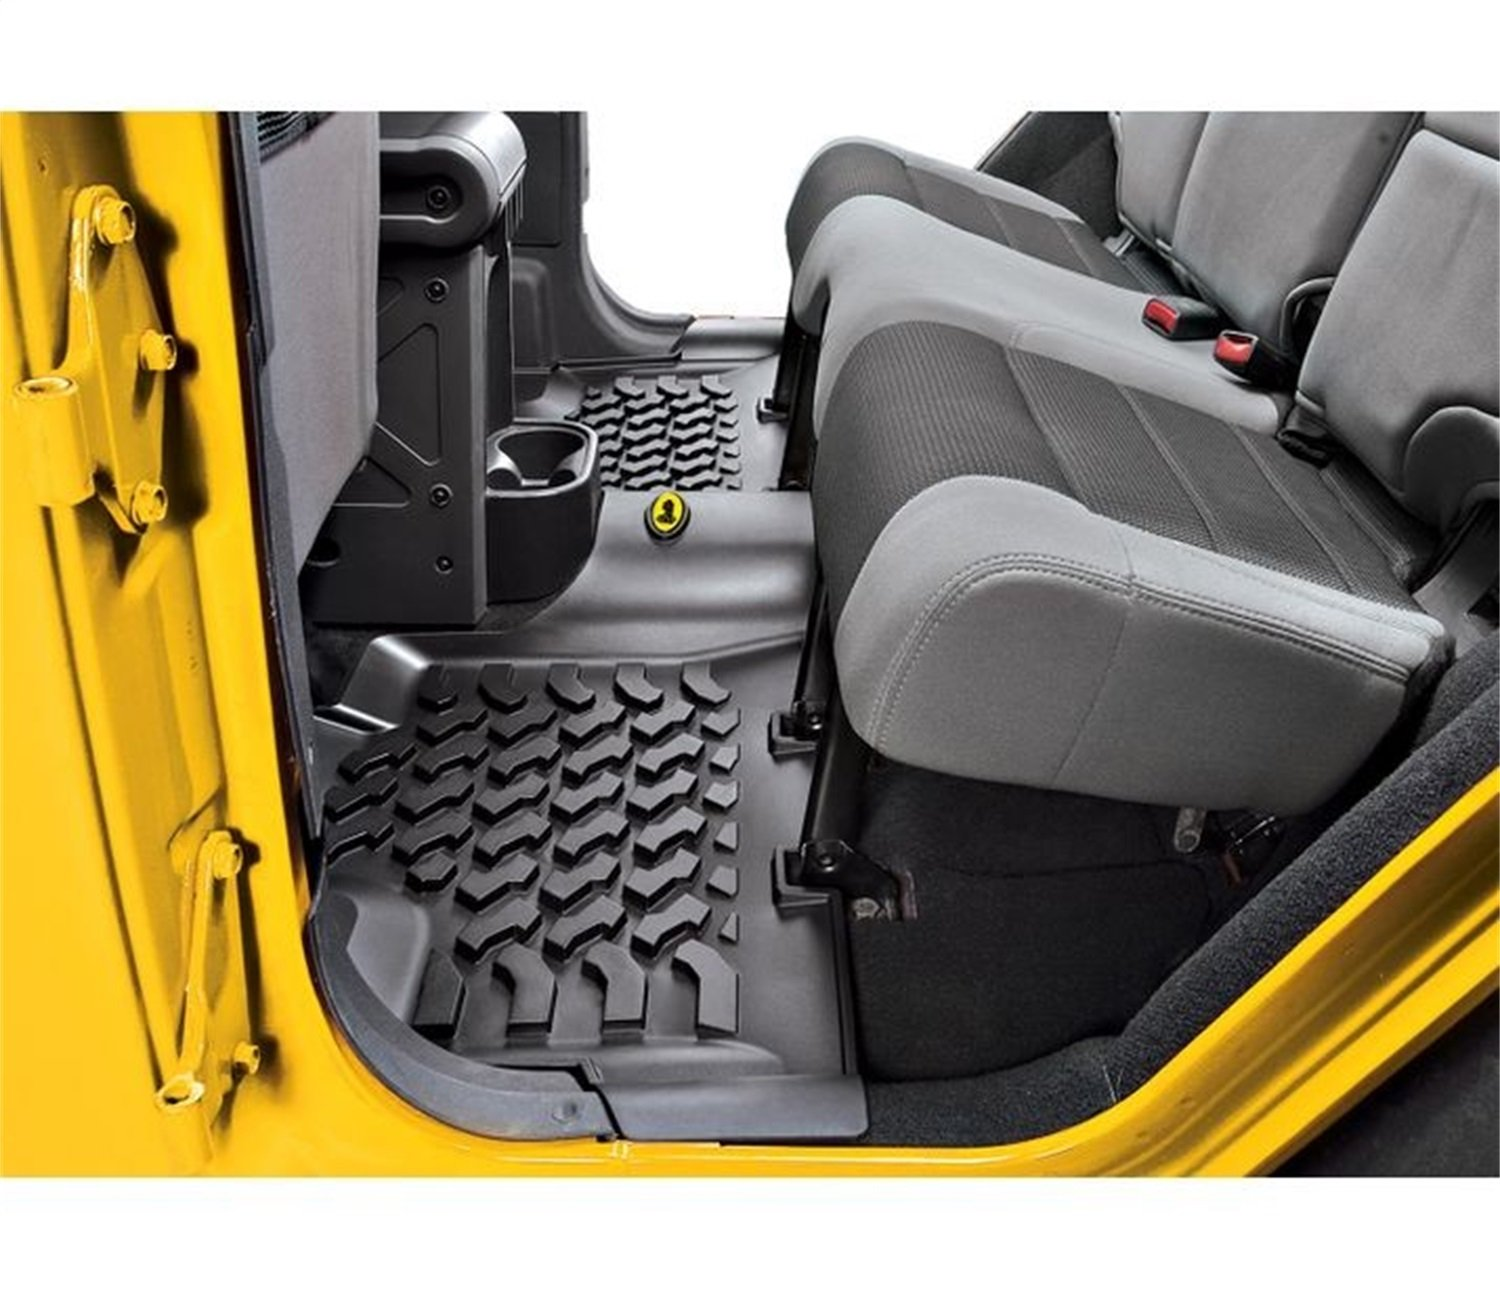 Amazon.com: Bestop Rear Floor Liner for Jeep 07-17 Wrangler Unlimited:  Automotive